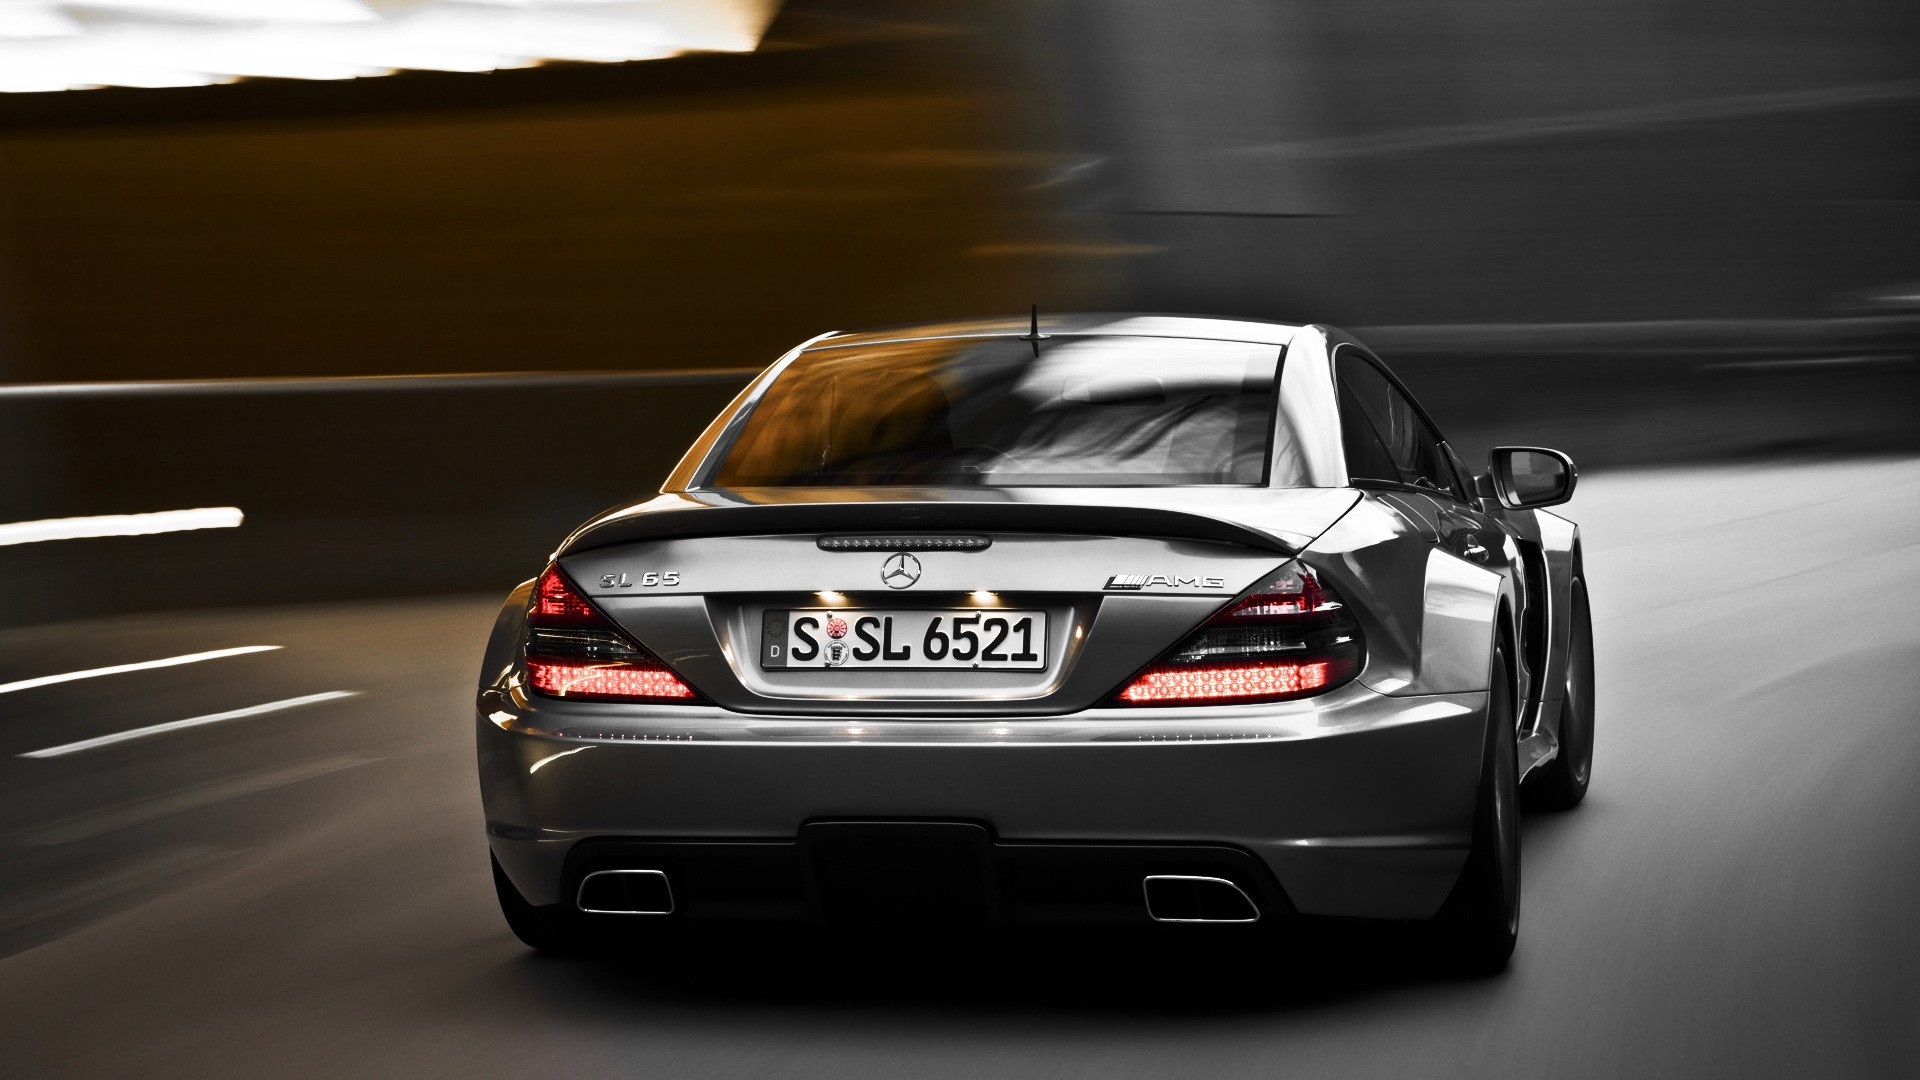 Mercedes Benz SL65 AMG black, wallpaper